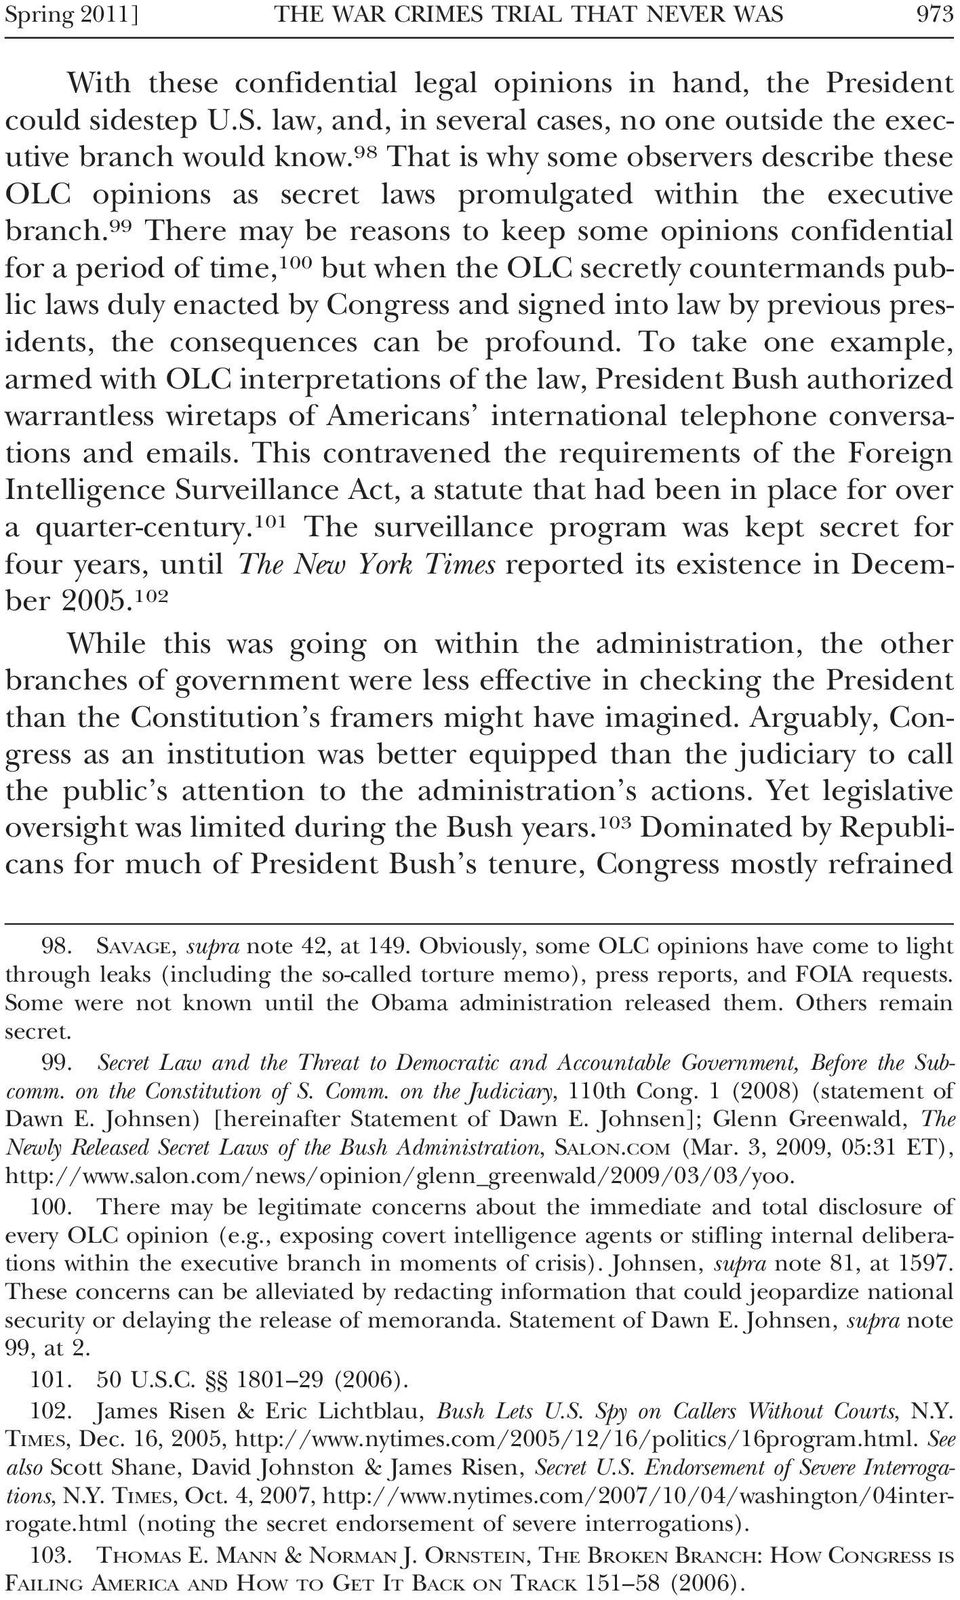 99 There may be reasons to keep some opinions confidential for a period of time, 100 but when the OLC secretly countermands public laws duly enacted by Congress and signed into law by previous